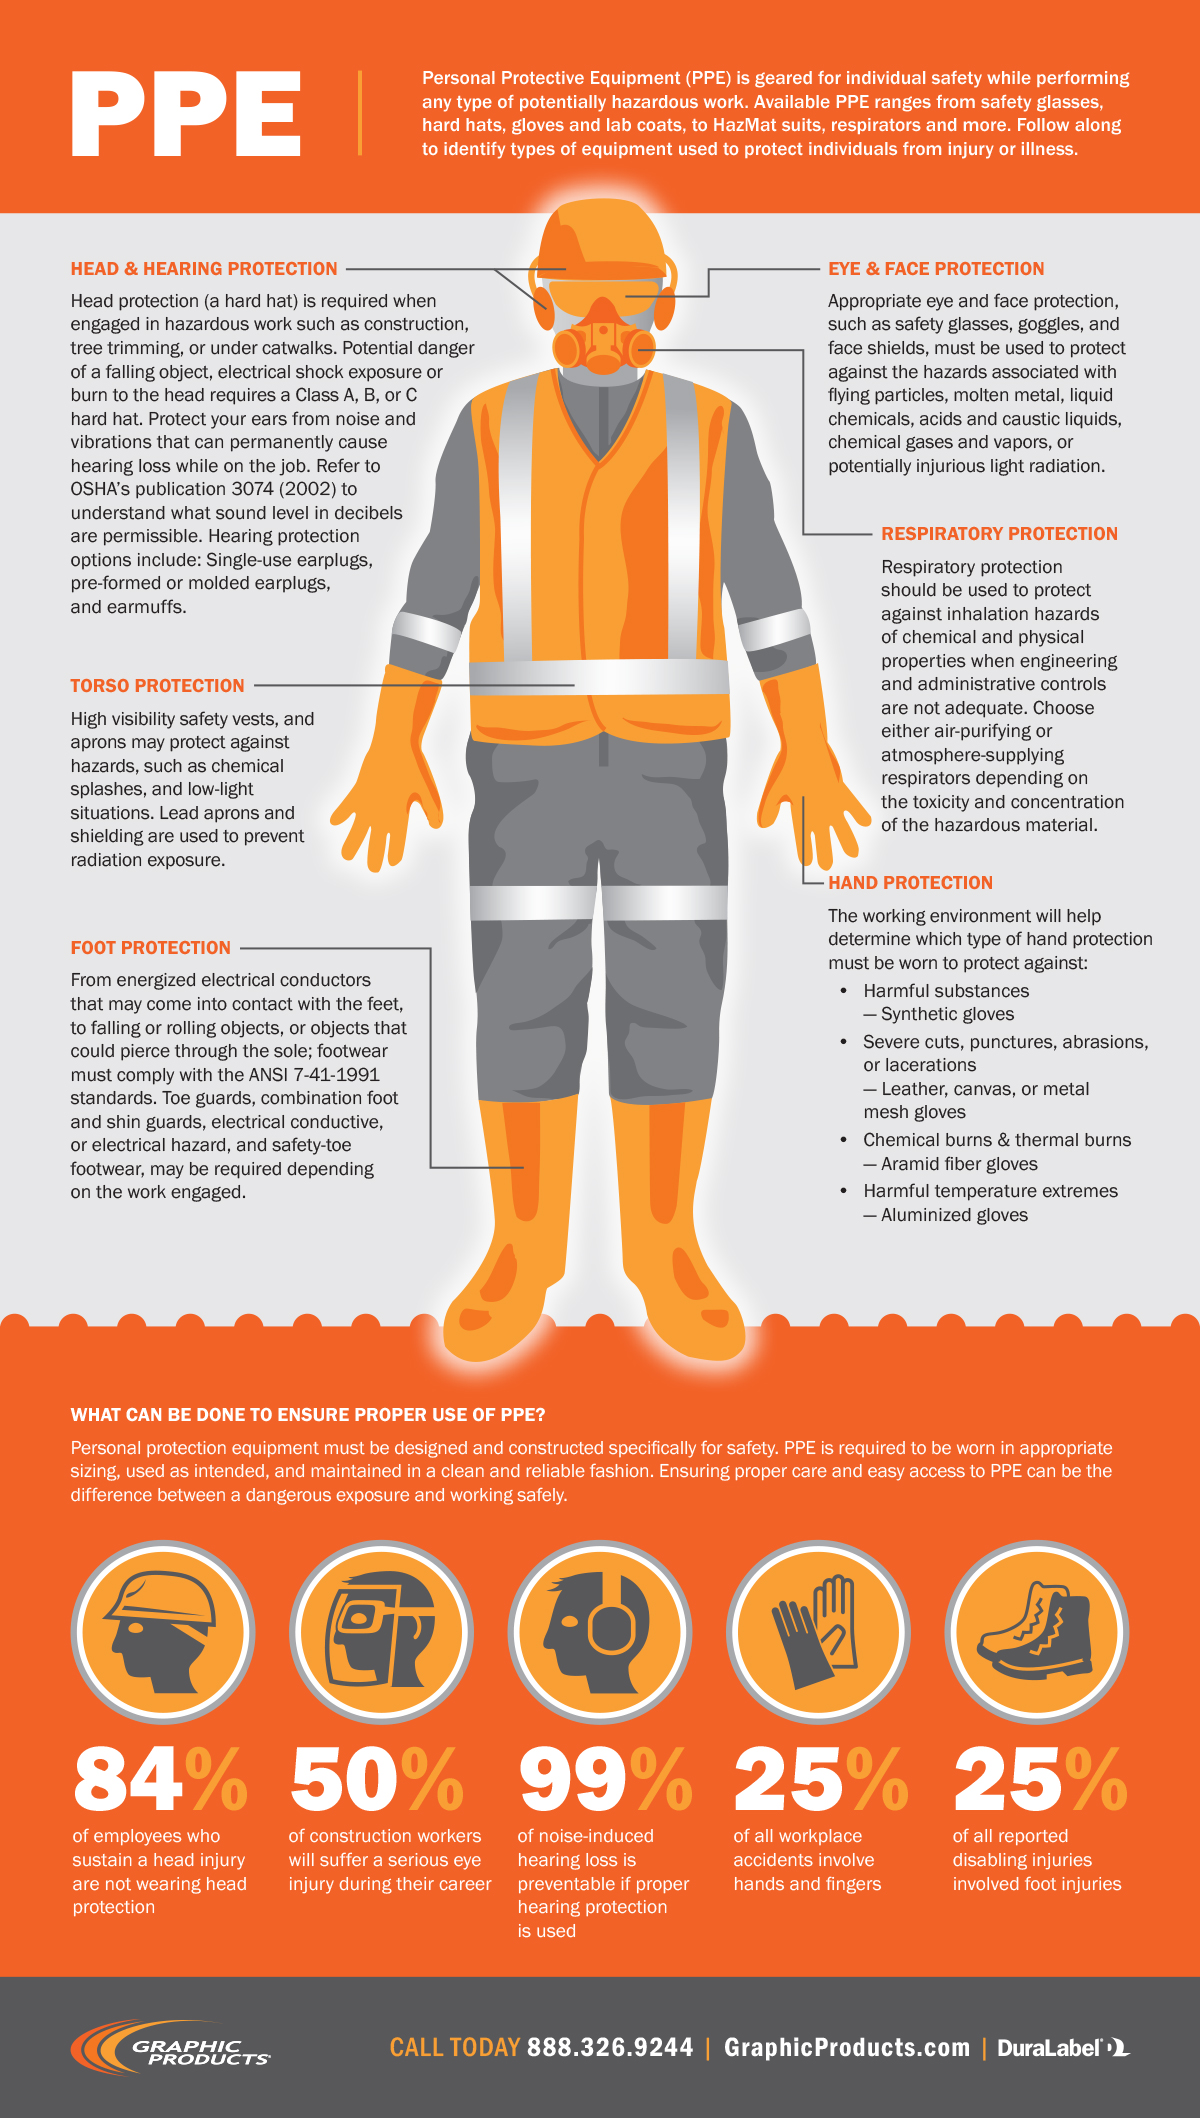 ppe-graphic